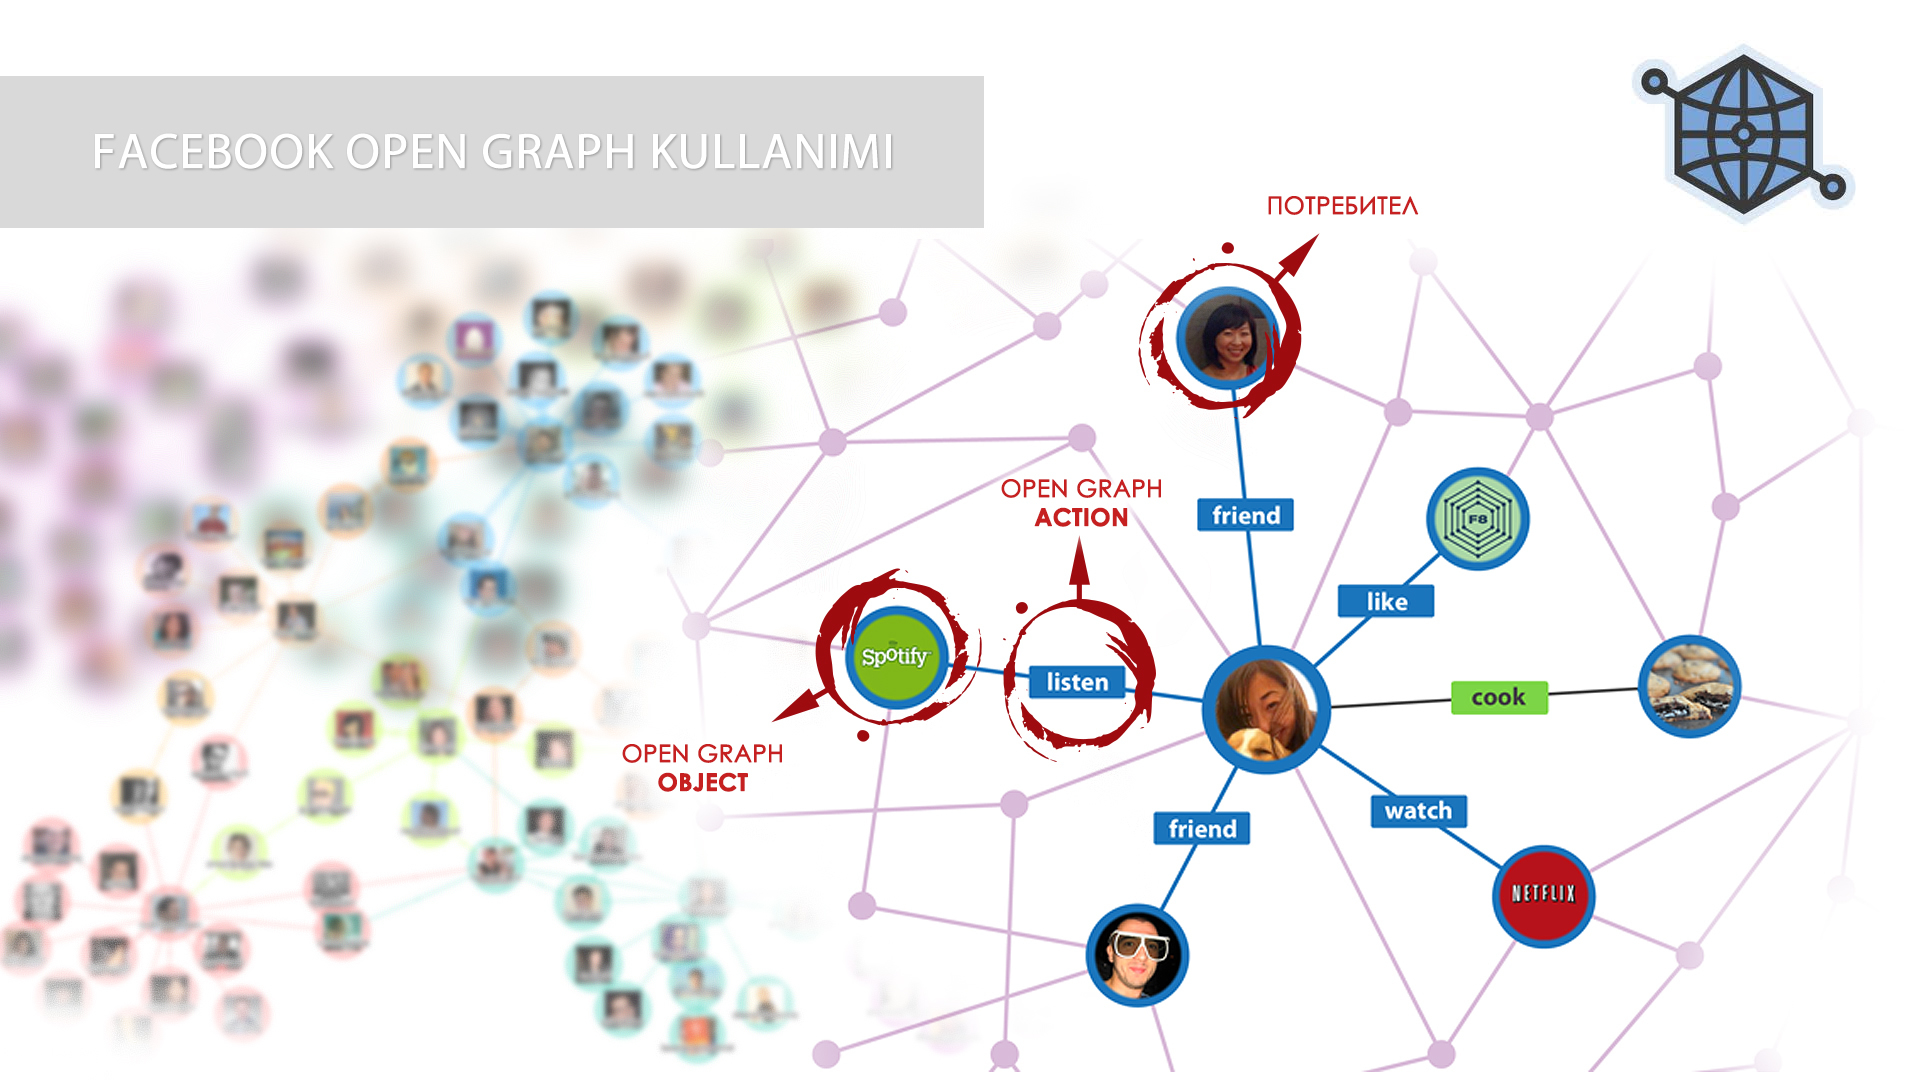 Facebook Open Graph Kullanımı